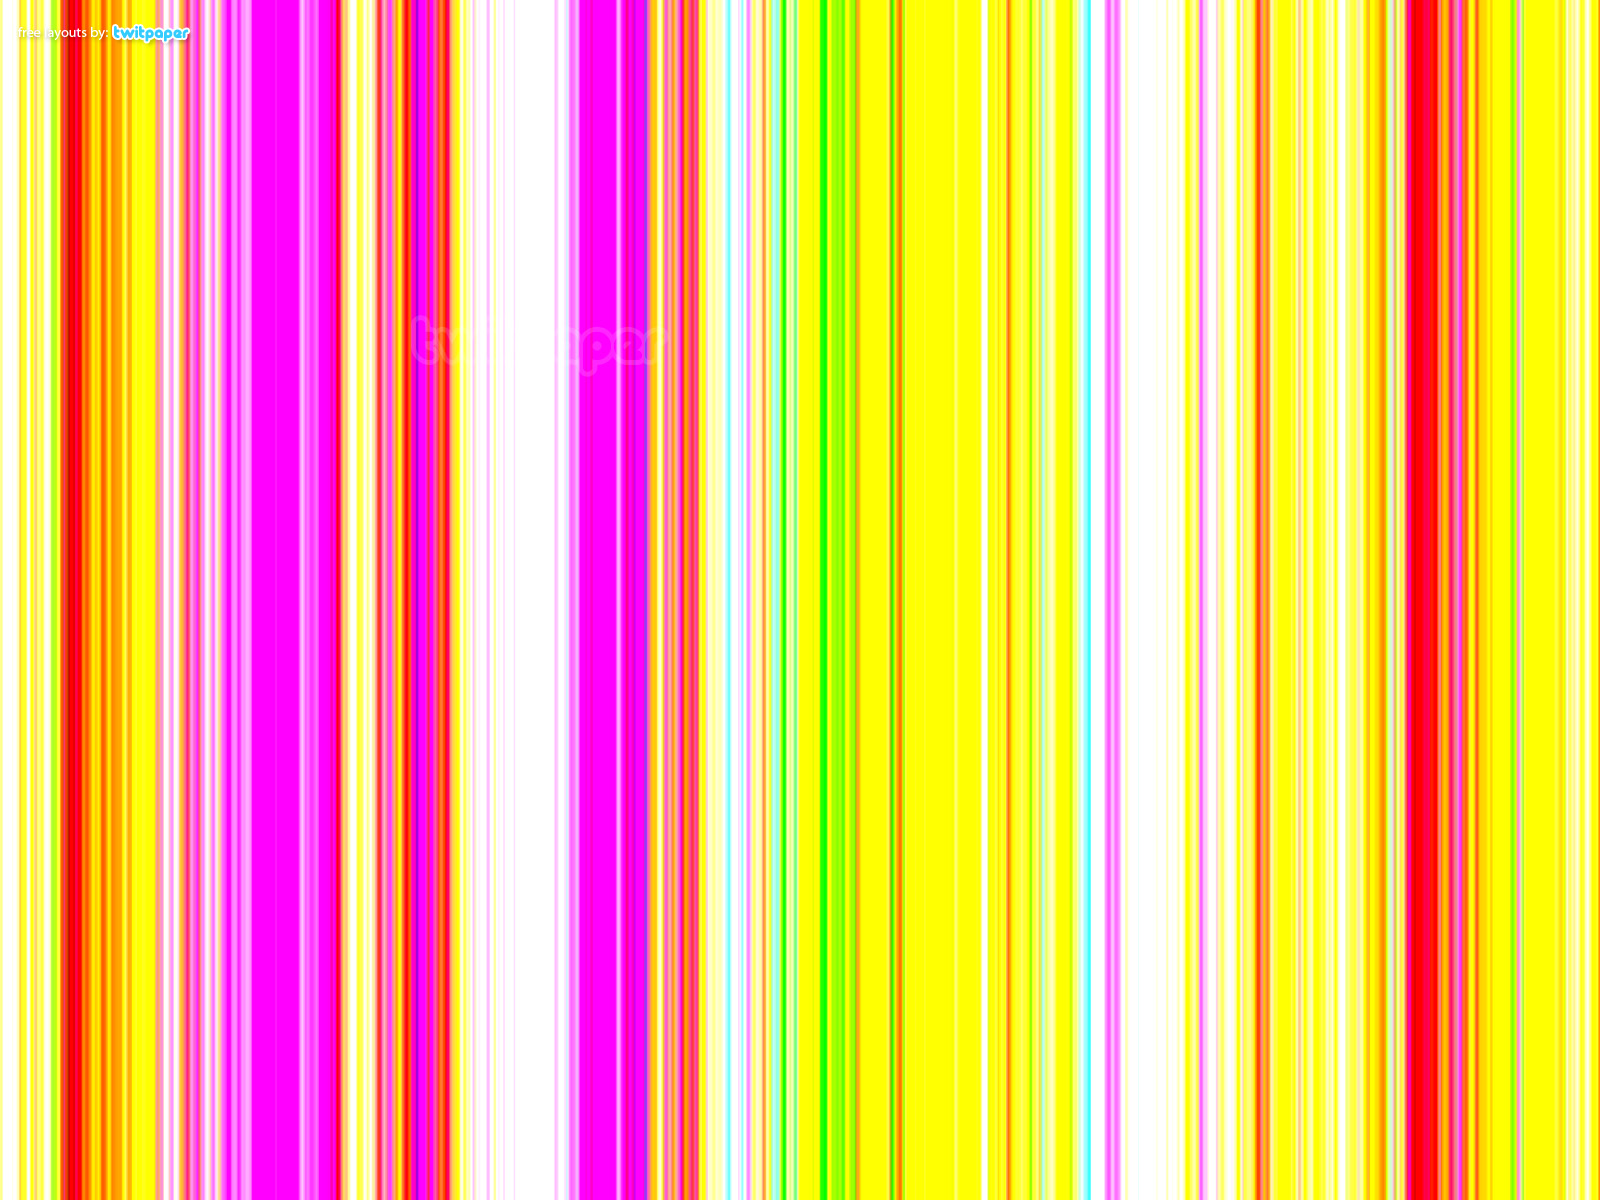 colorful candy wallpaper 8 - photo #31